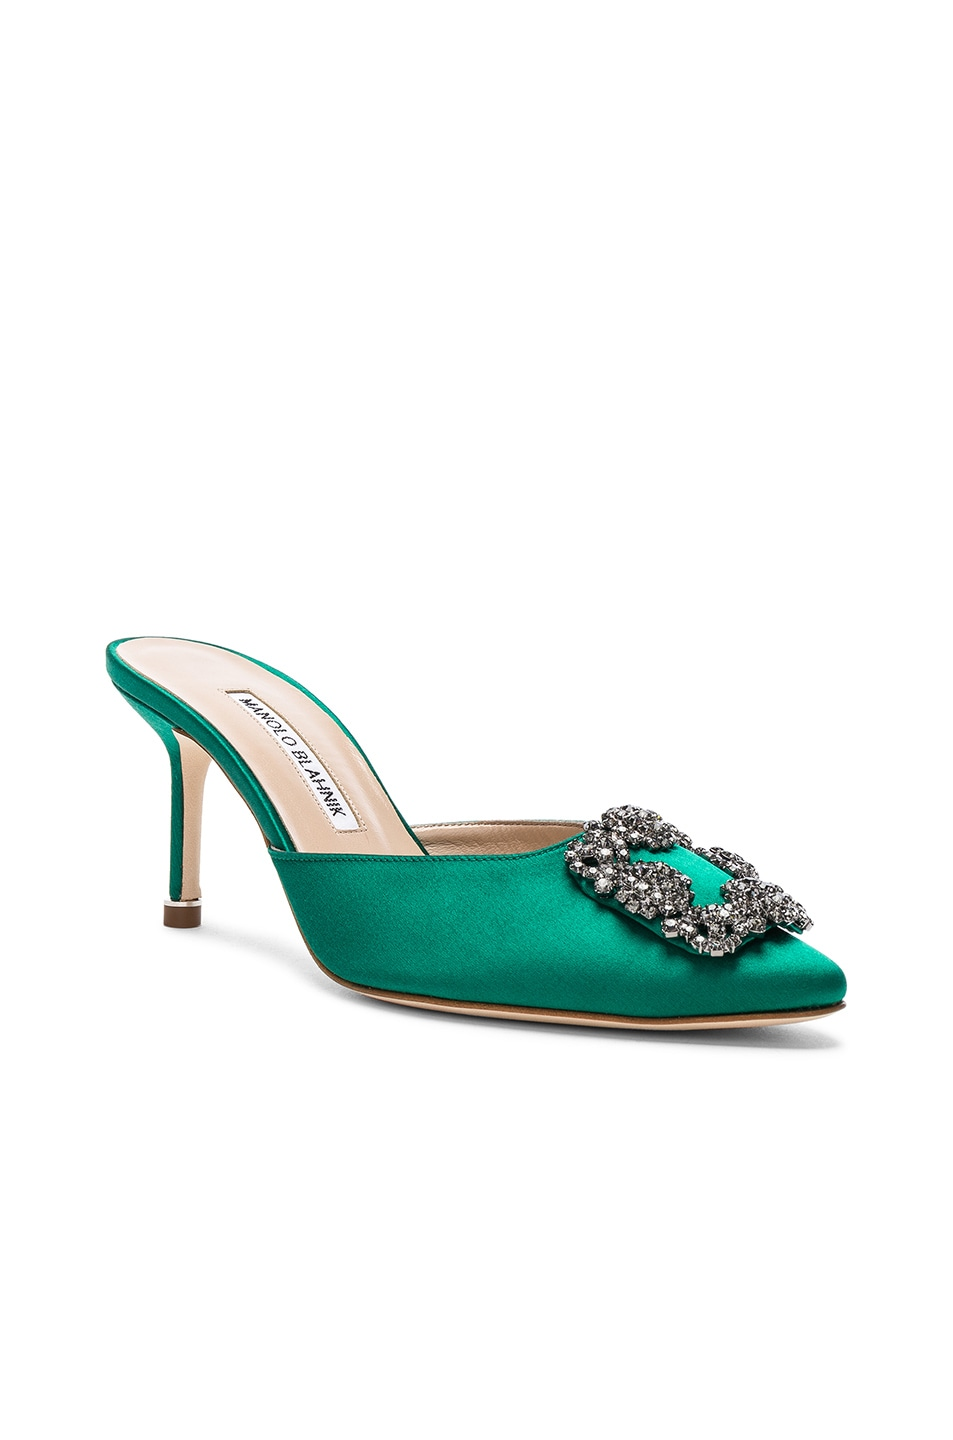 Image 2 of Manolo Blahnik Satin Hangisi 70 Mules in Green Satin